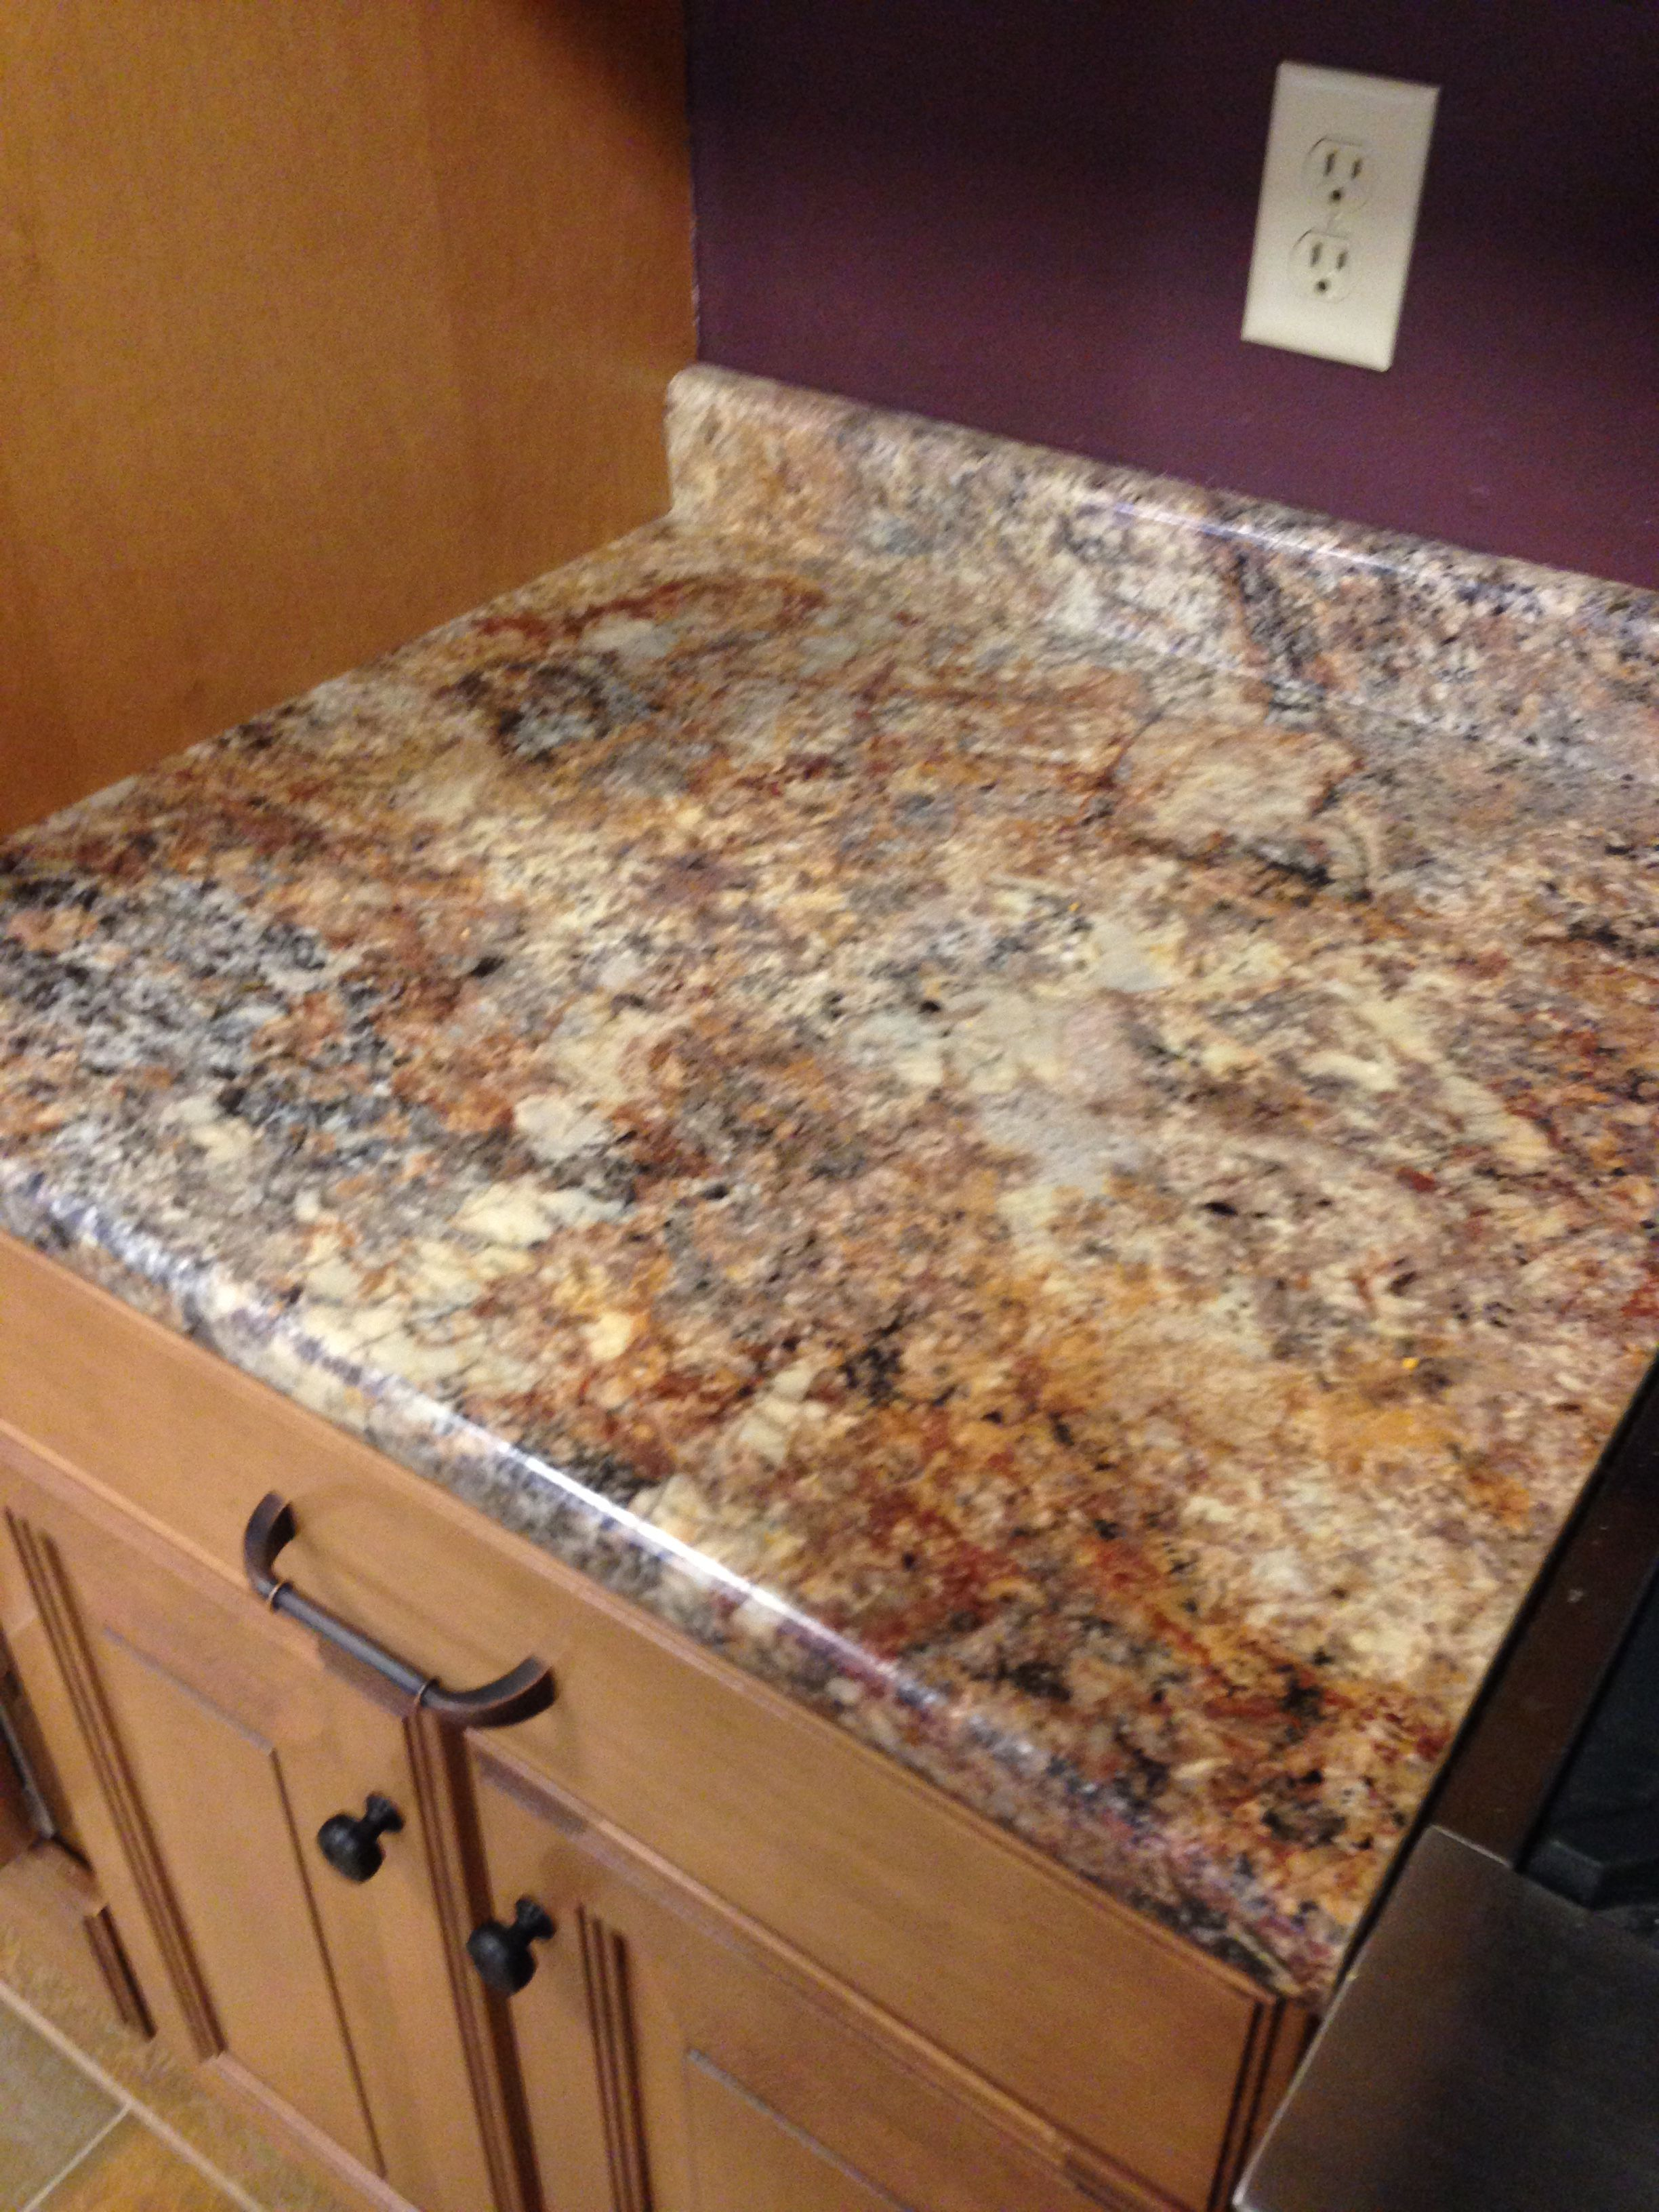 Mascarello Laminate Countertop Formica Golden Mascarello 3465 Laminate Home Kitchen